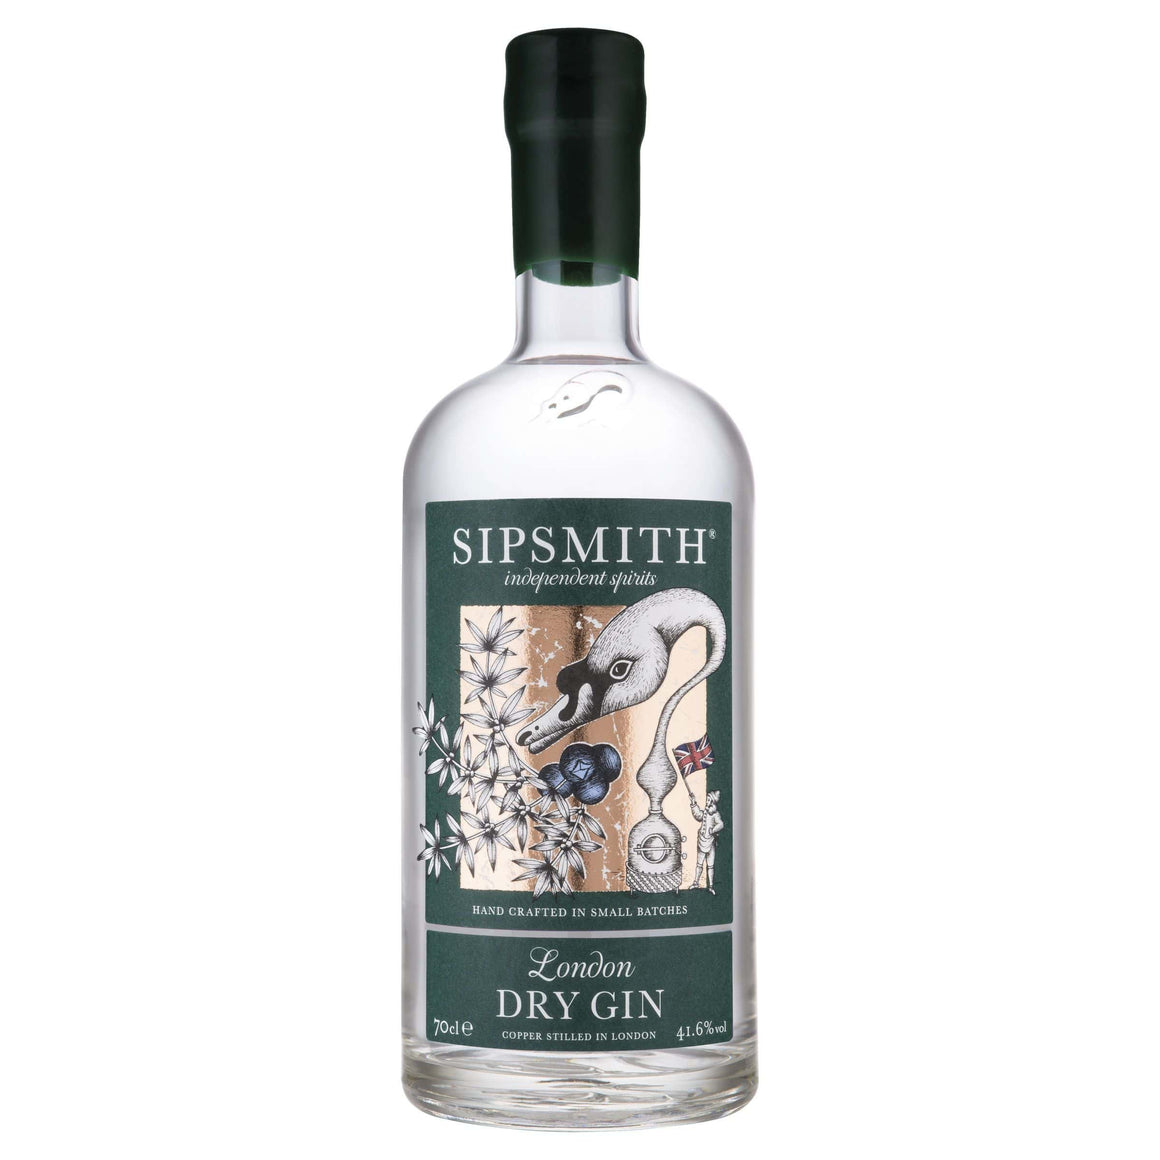 SipSmith London Dry Gin 41.6% 700ml